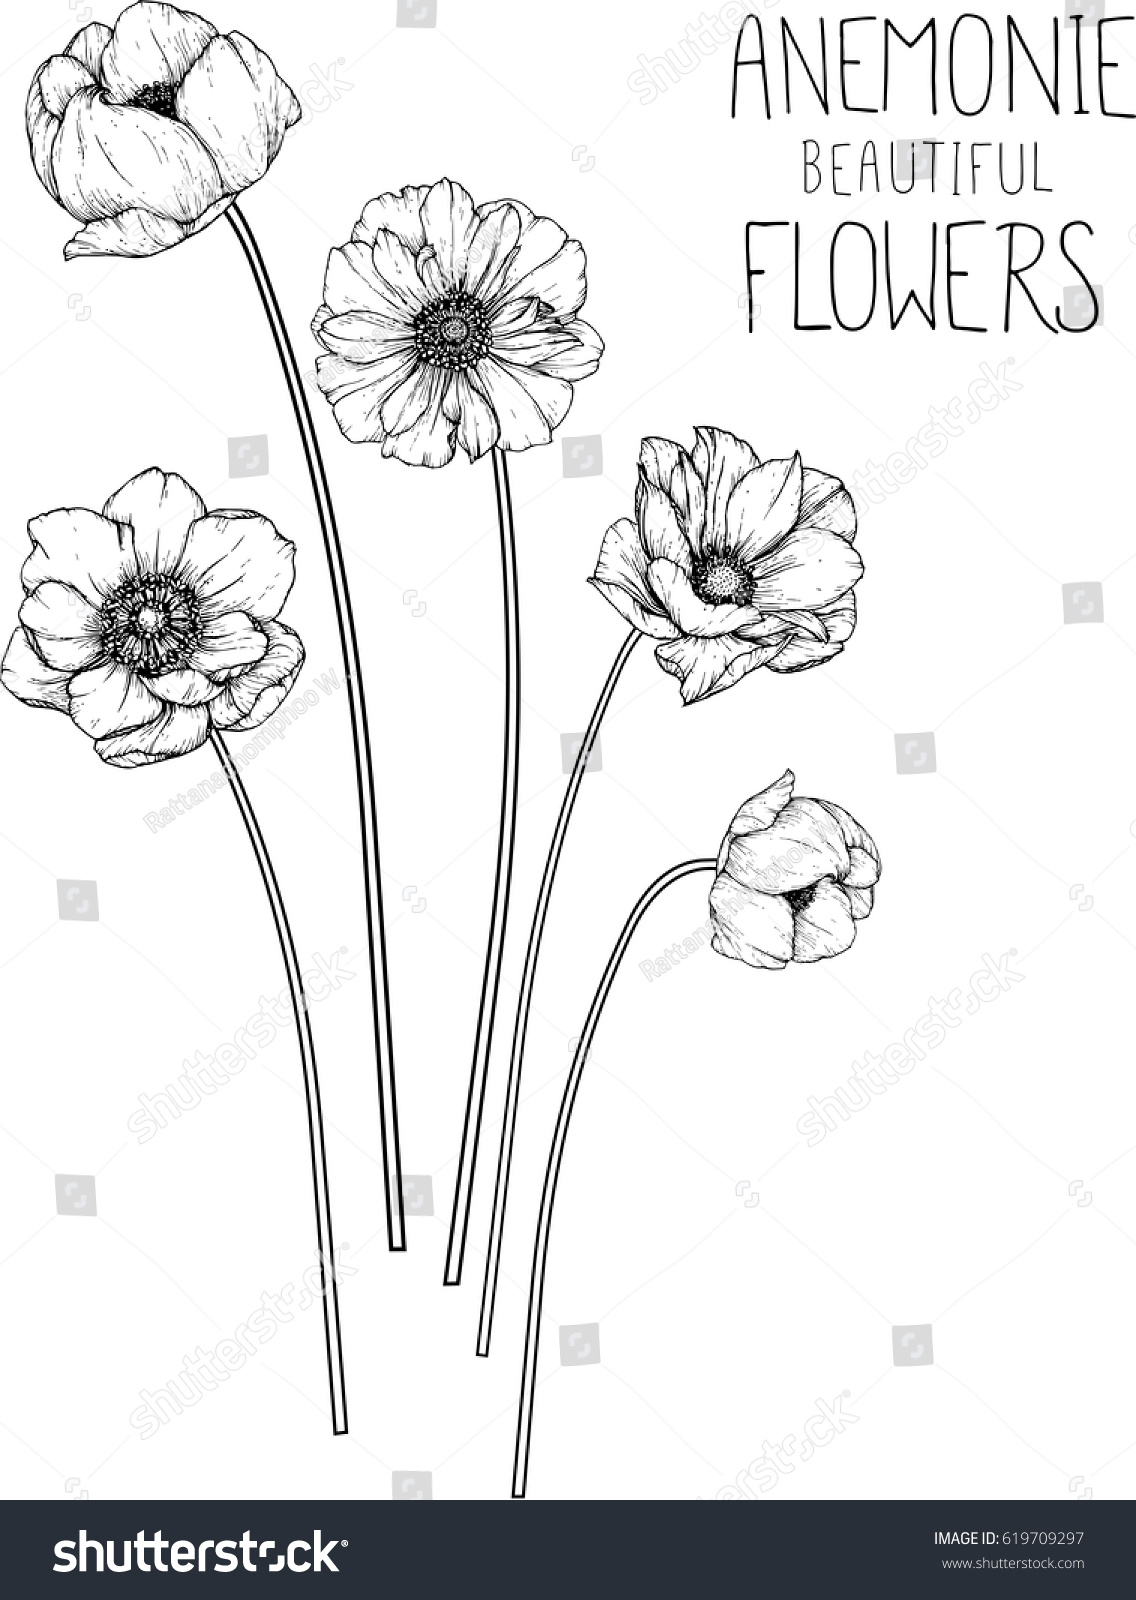 Anemone Flower Drawing : anemone, flower, drawing, Drawing, Flowers, Anemone, Flower, Clipart, Illustration, Stock, Vector, (Royalty, Free), 619709297